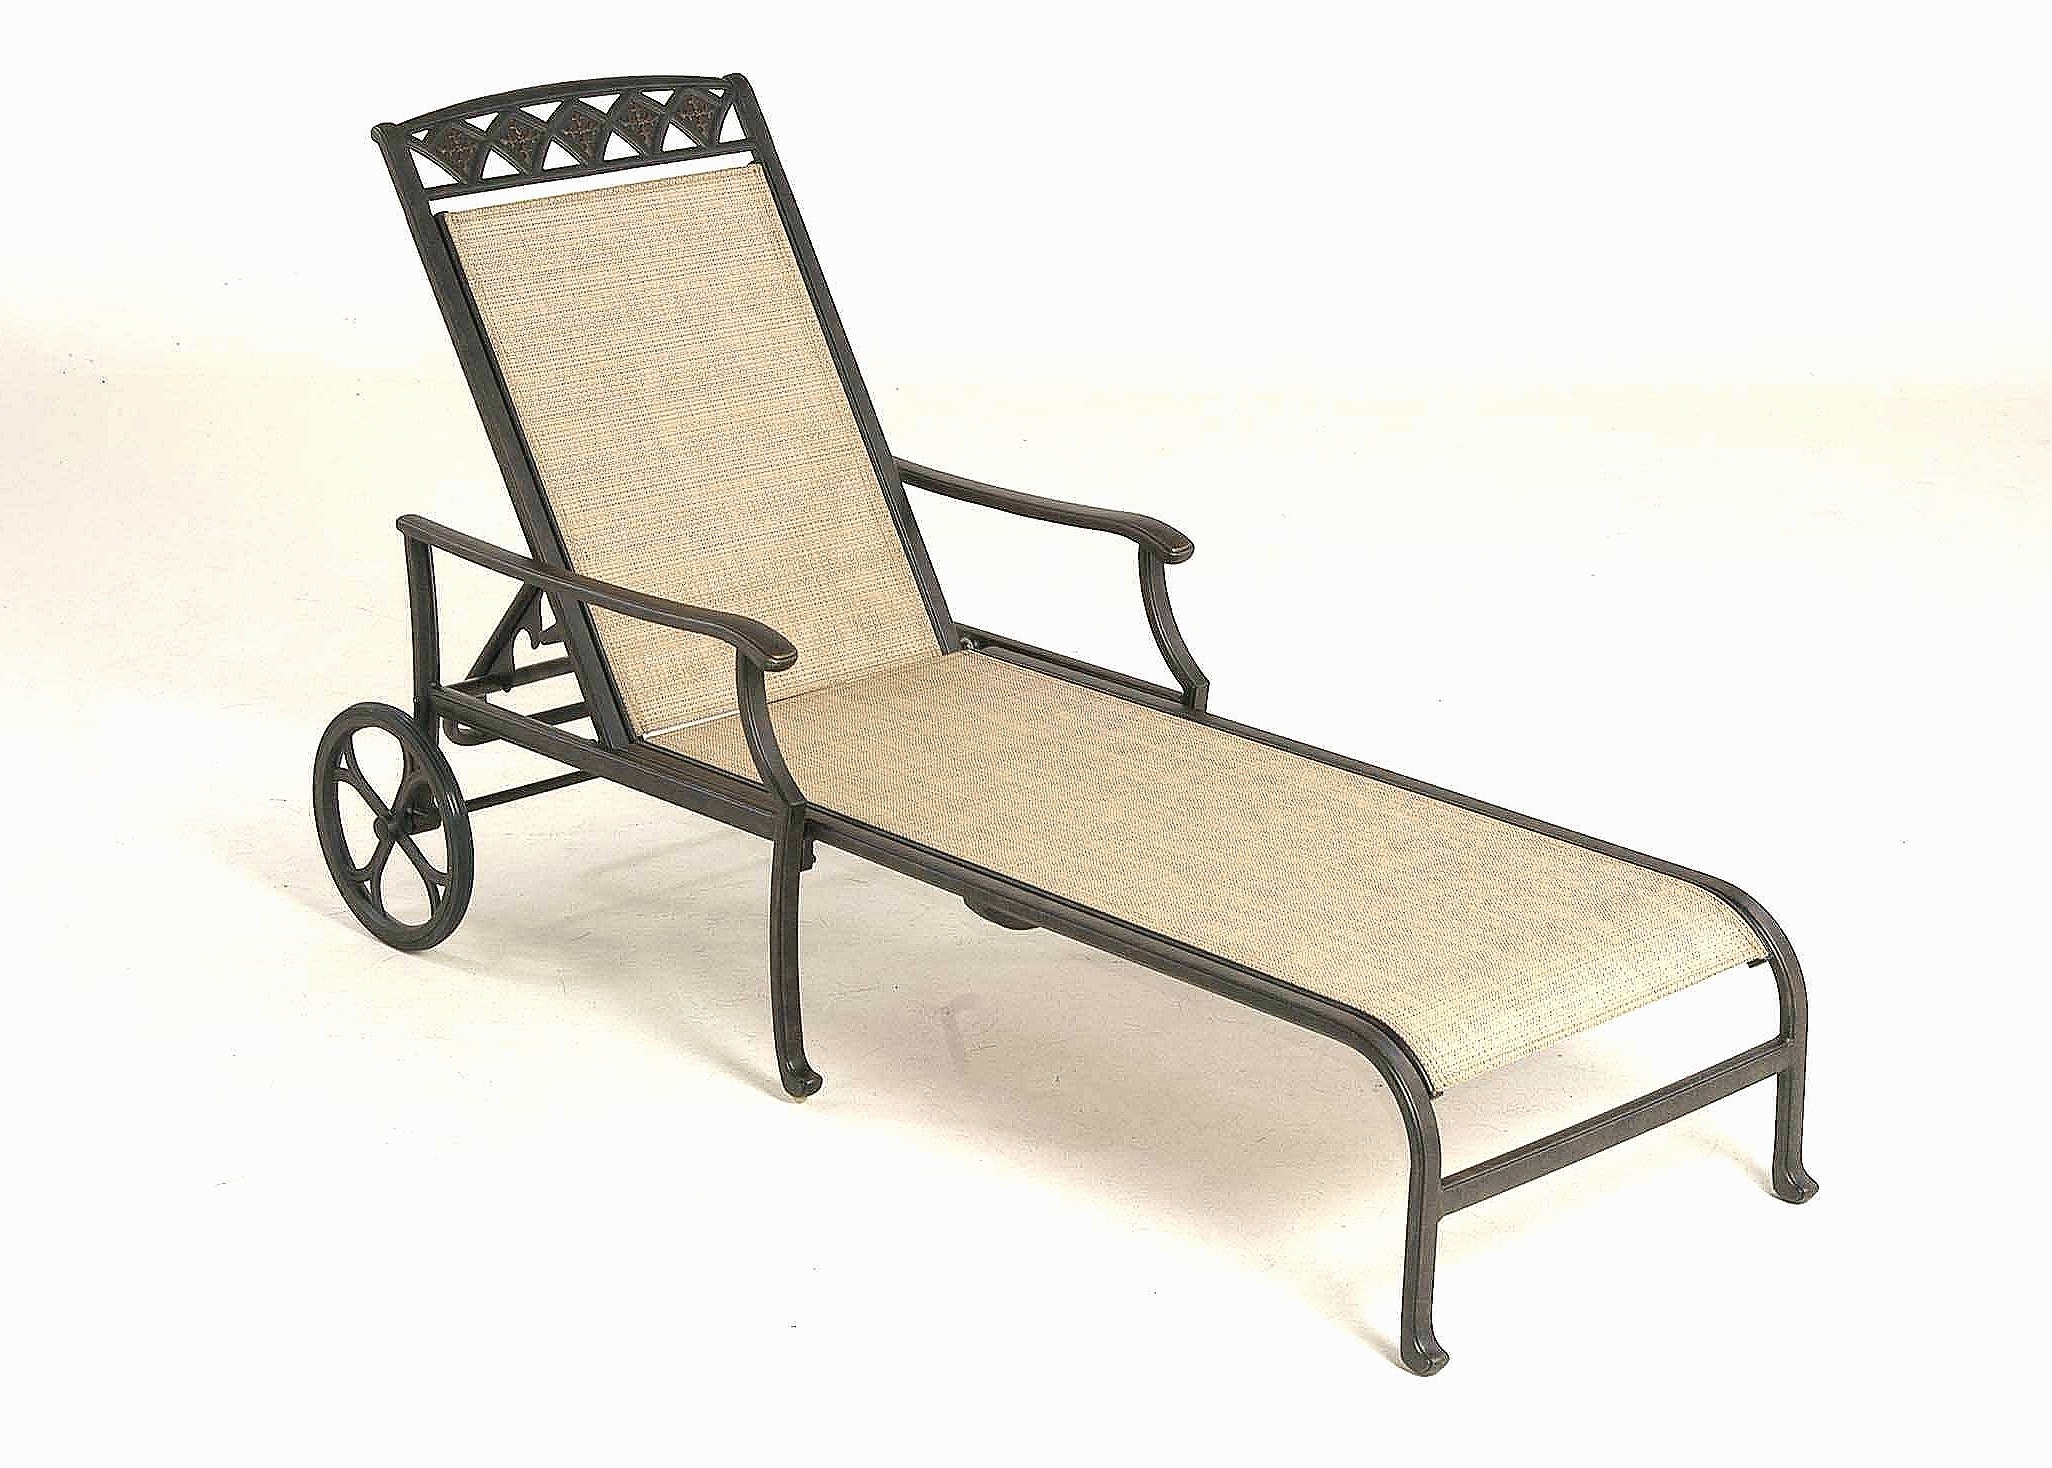 Best And Newest Convertible Chair : Lounge Chair Folding Chaise Lounge Chair Inside Adams Chaise Lounges (View 7 of 15)